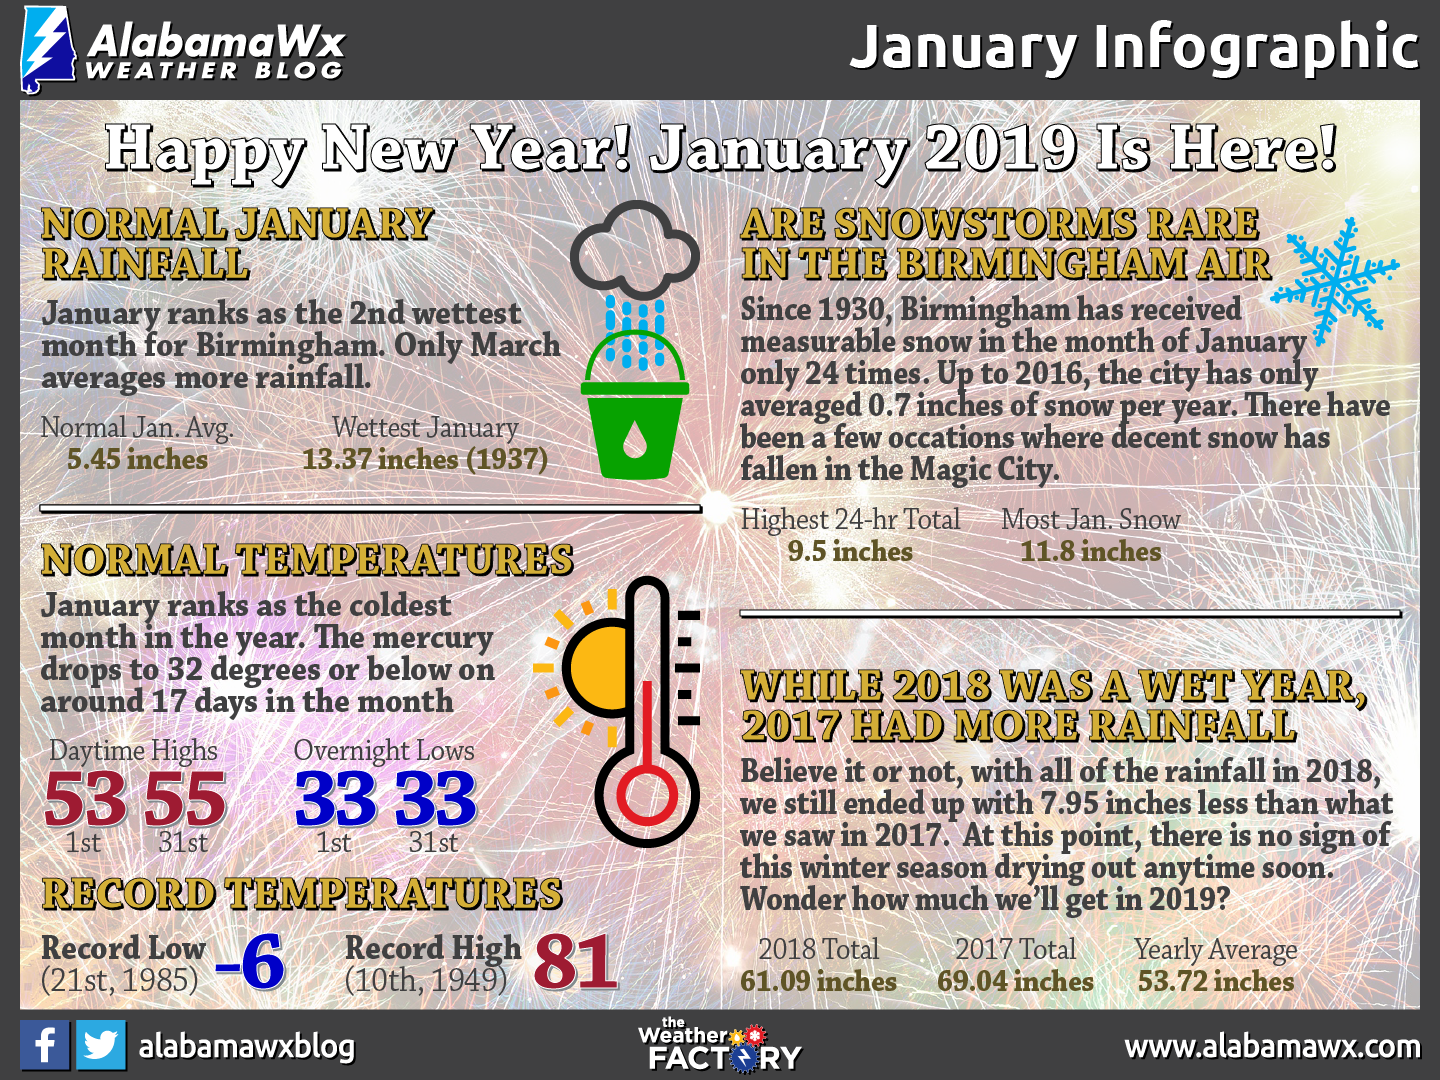 January Infographic by AlabamaWx's Scott Martin